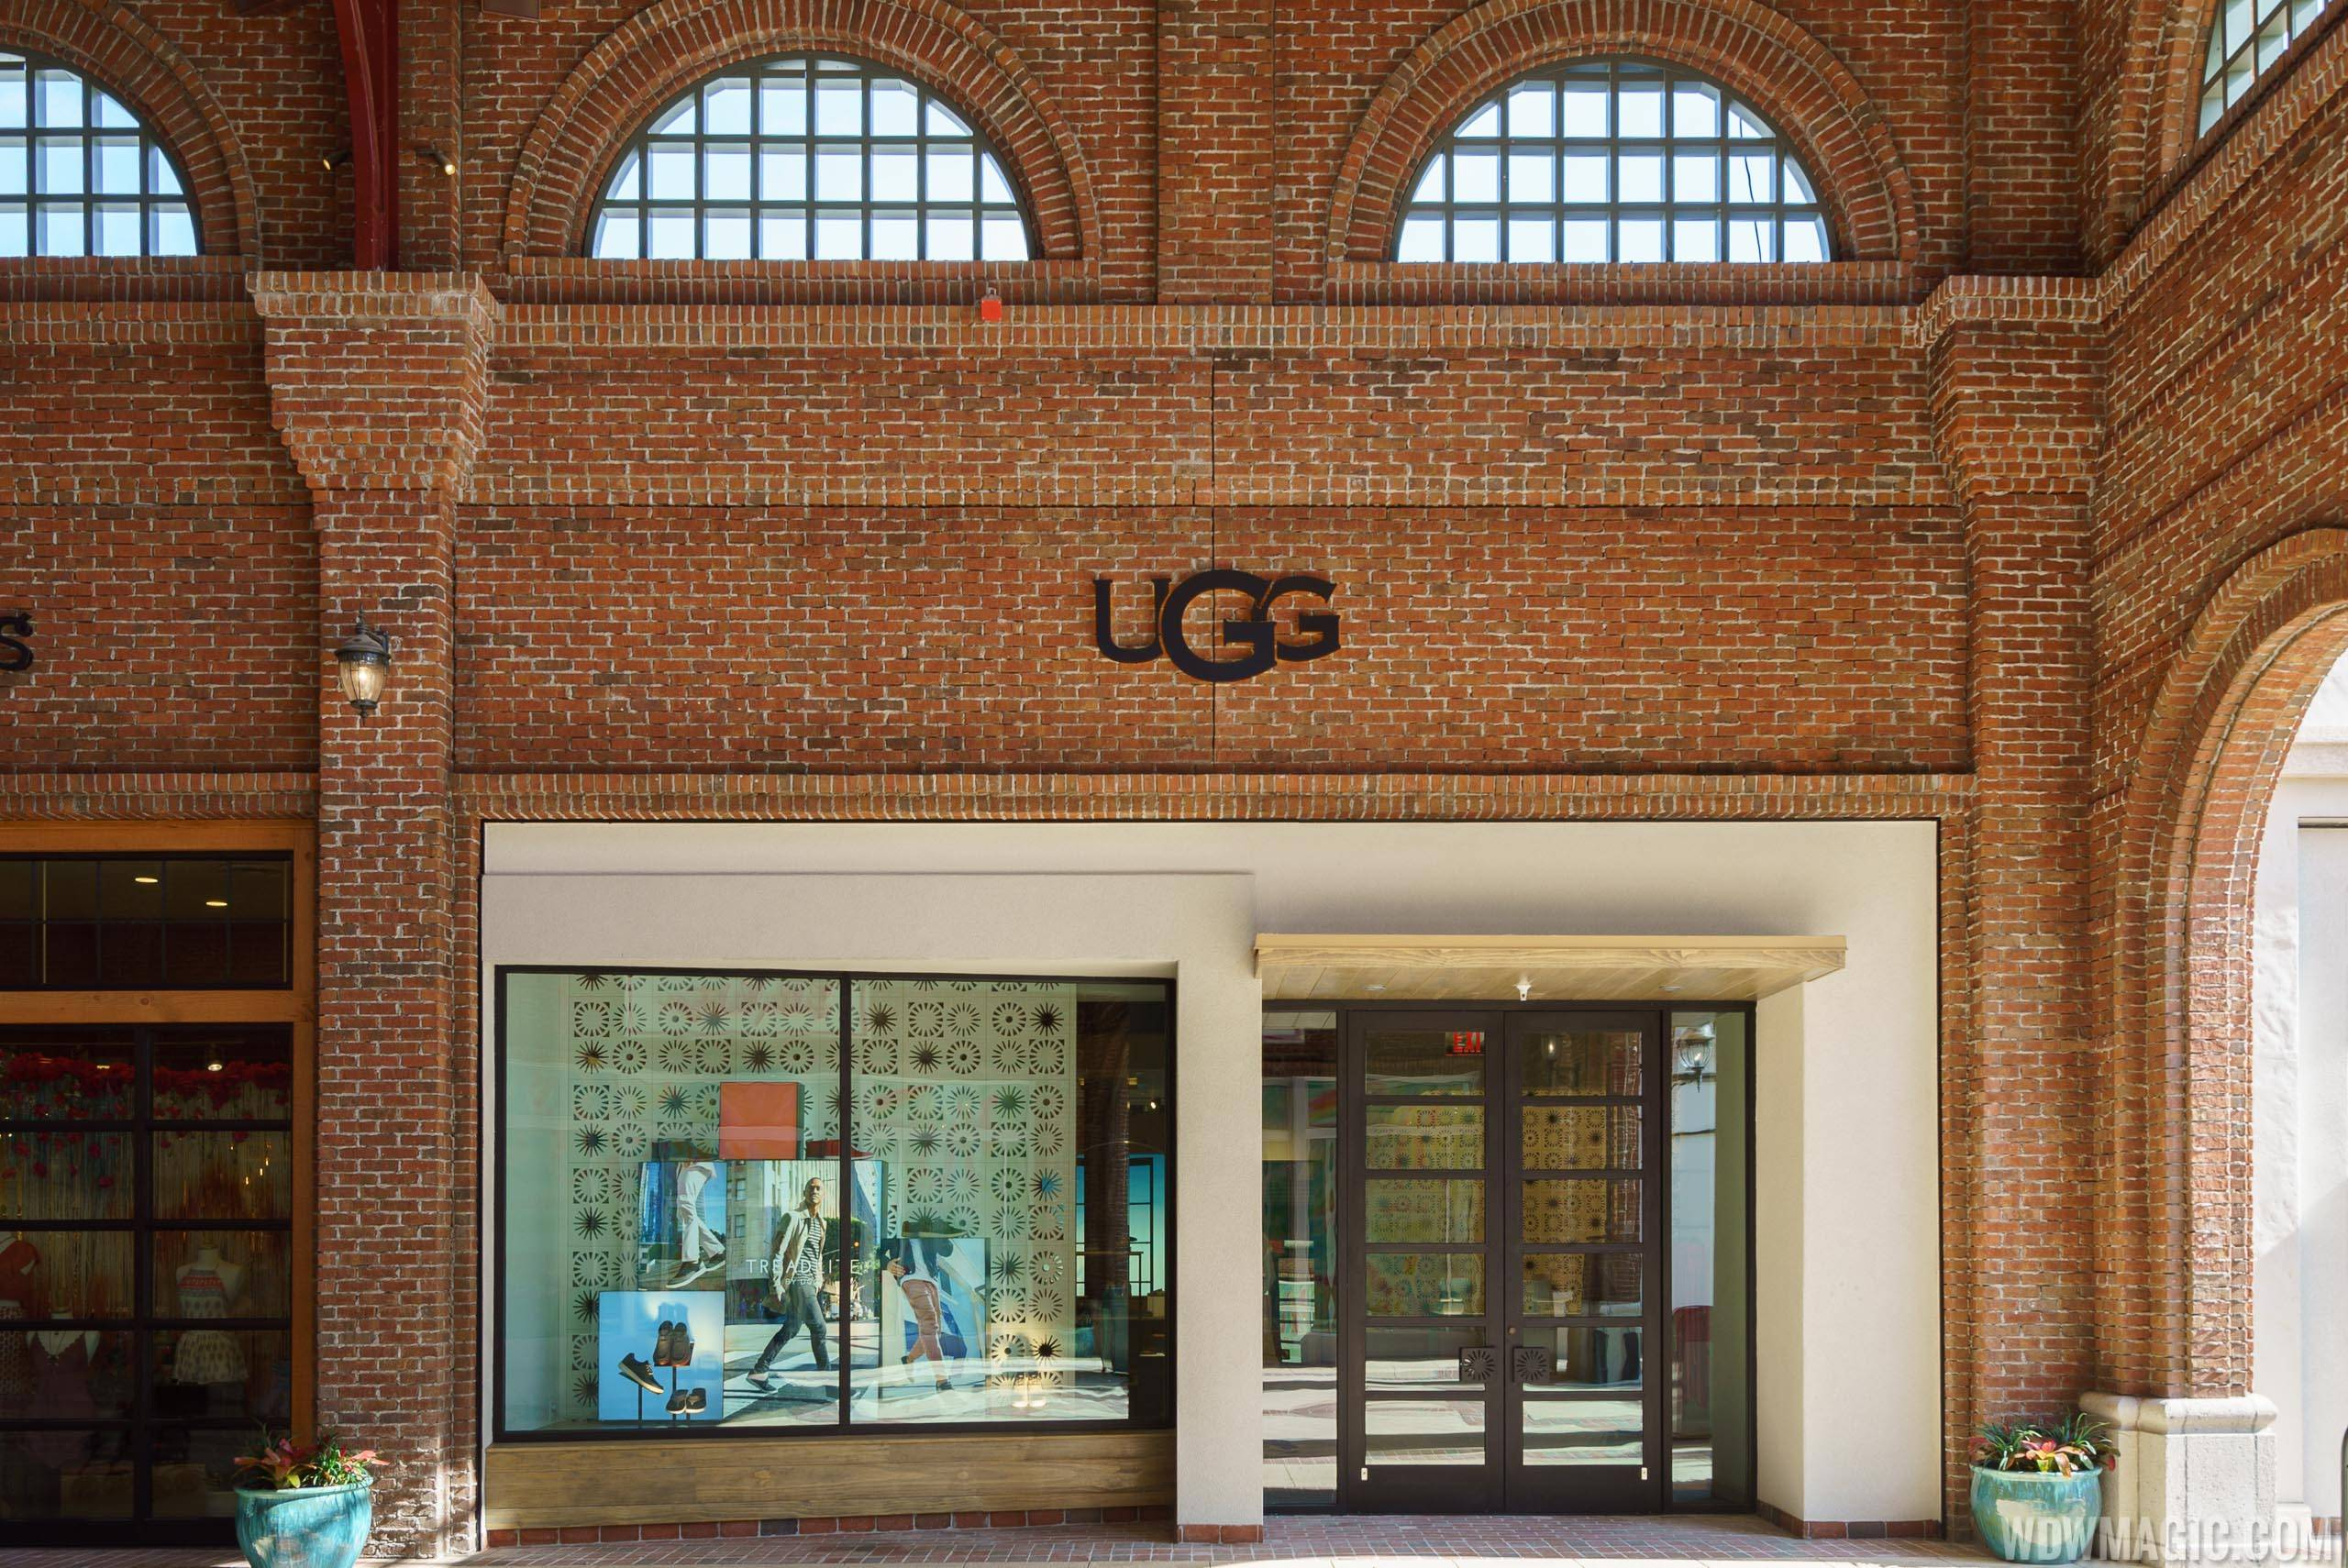 UGG overview